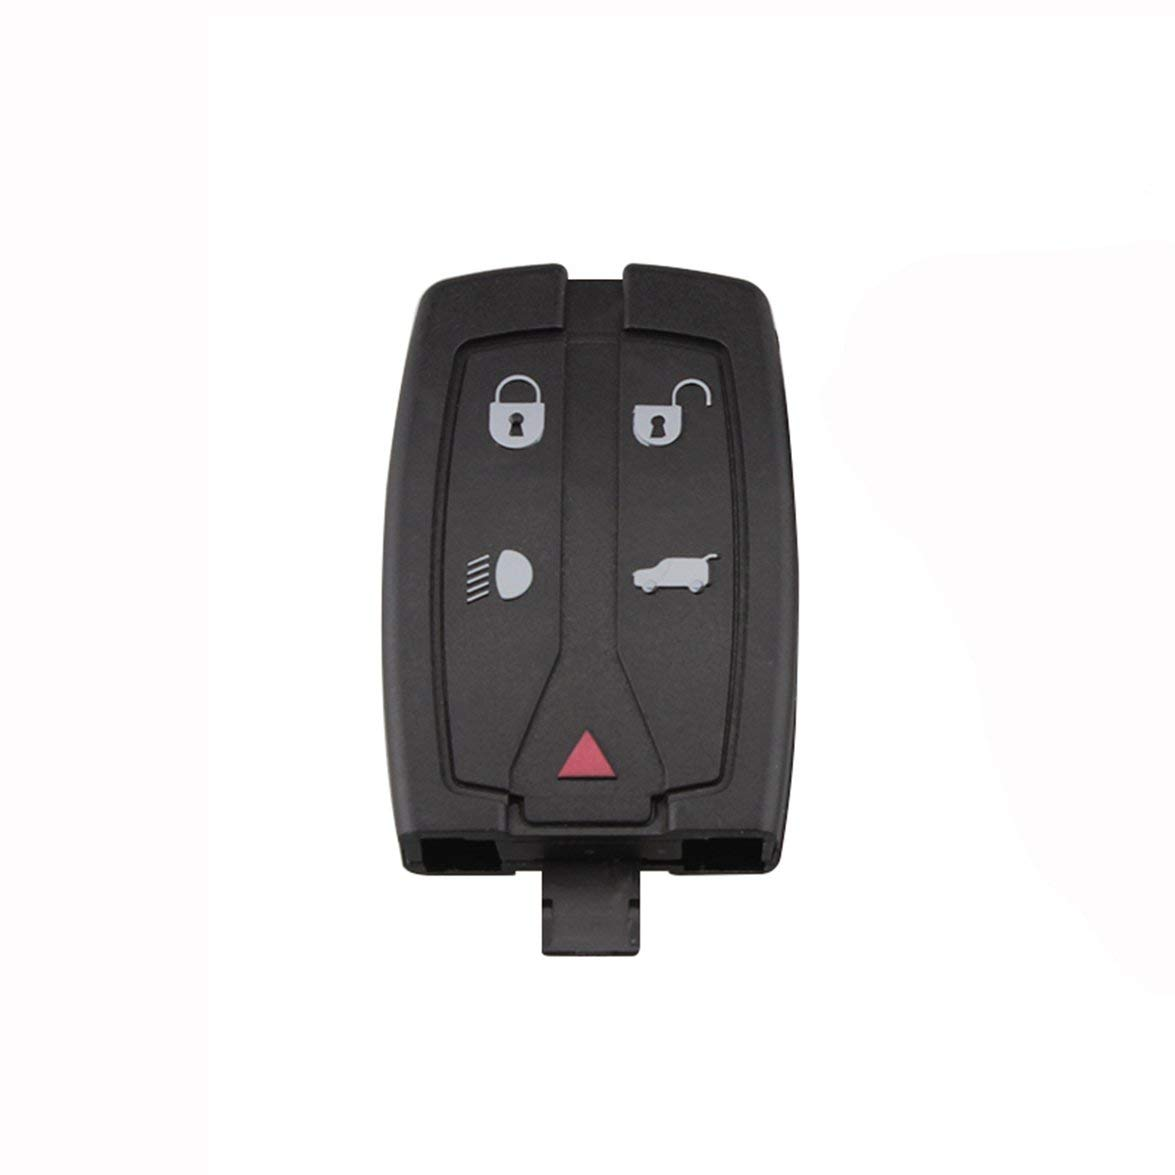 Kongqiabona Car Remote Key for Land Rover Entry Remote Car Key Fob Control Car Keys Come with PFC7953 Chip 434 Frequency